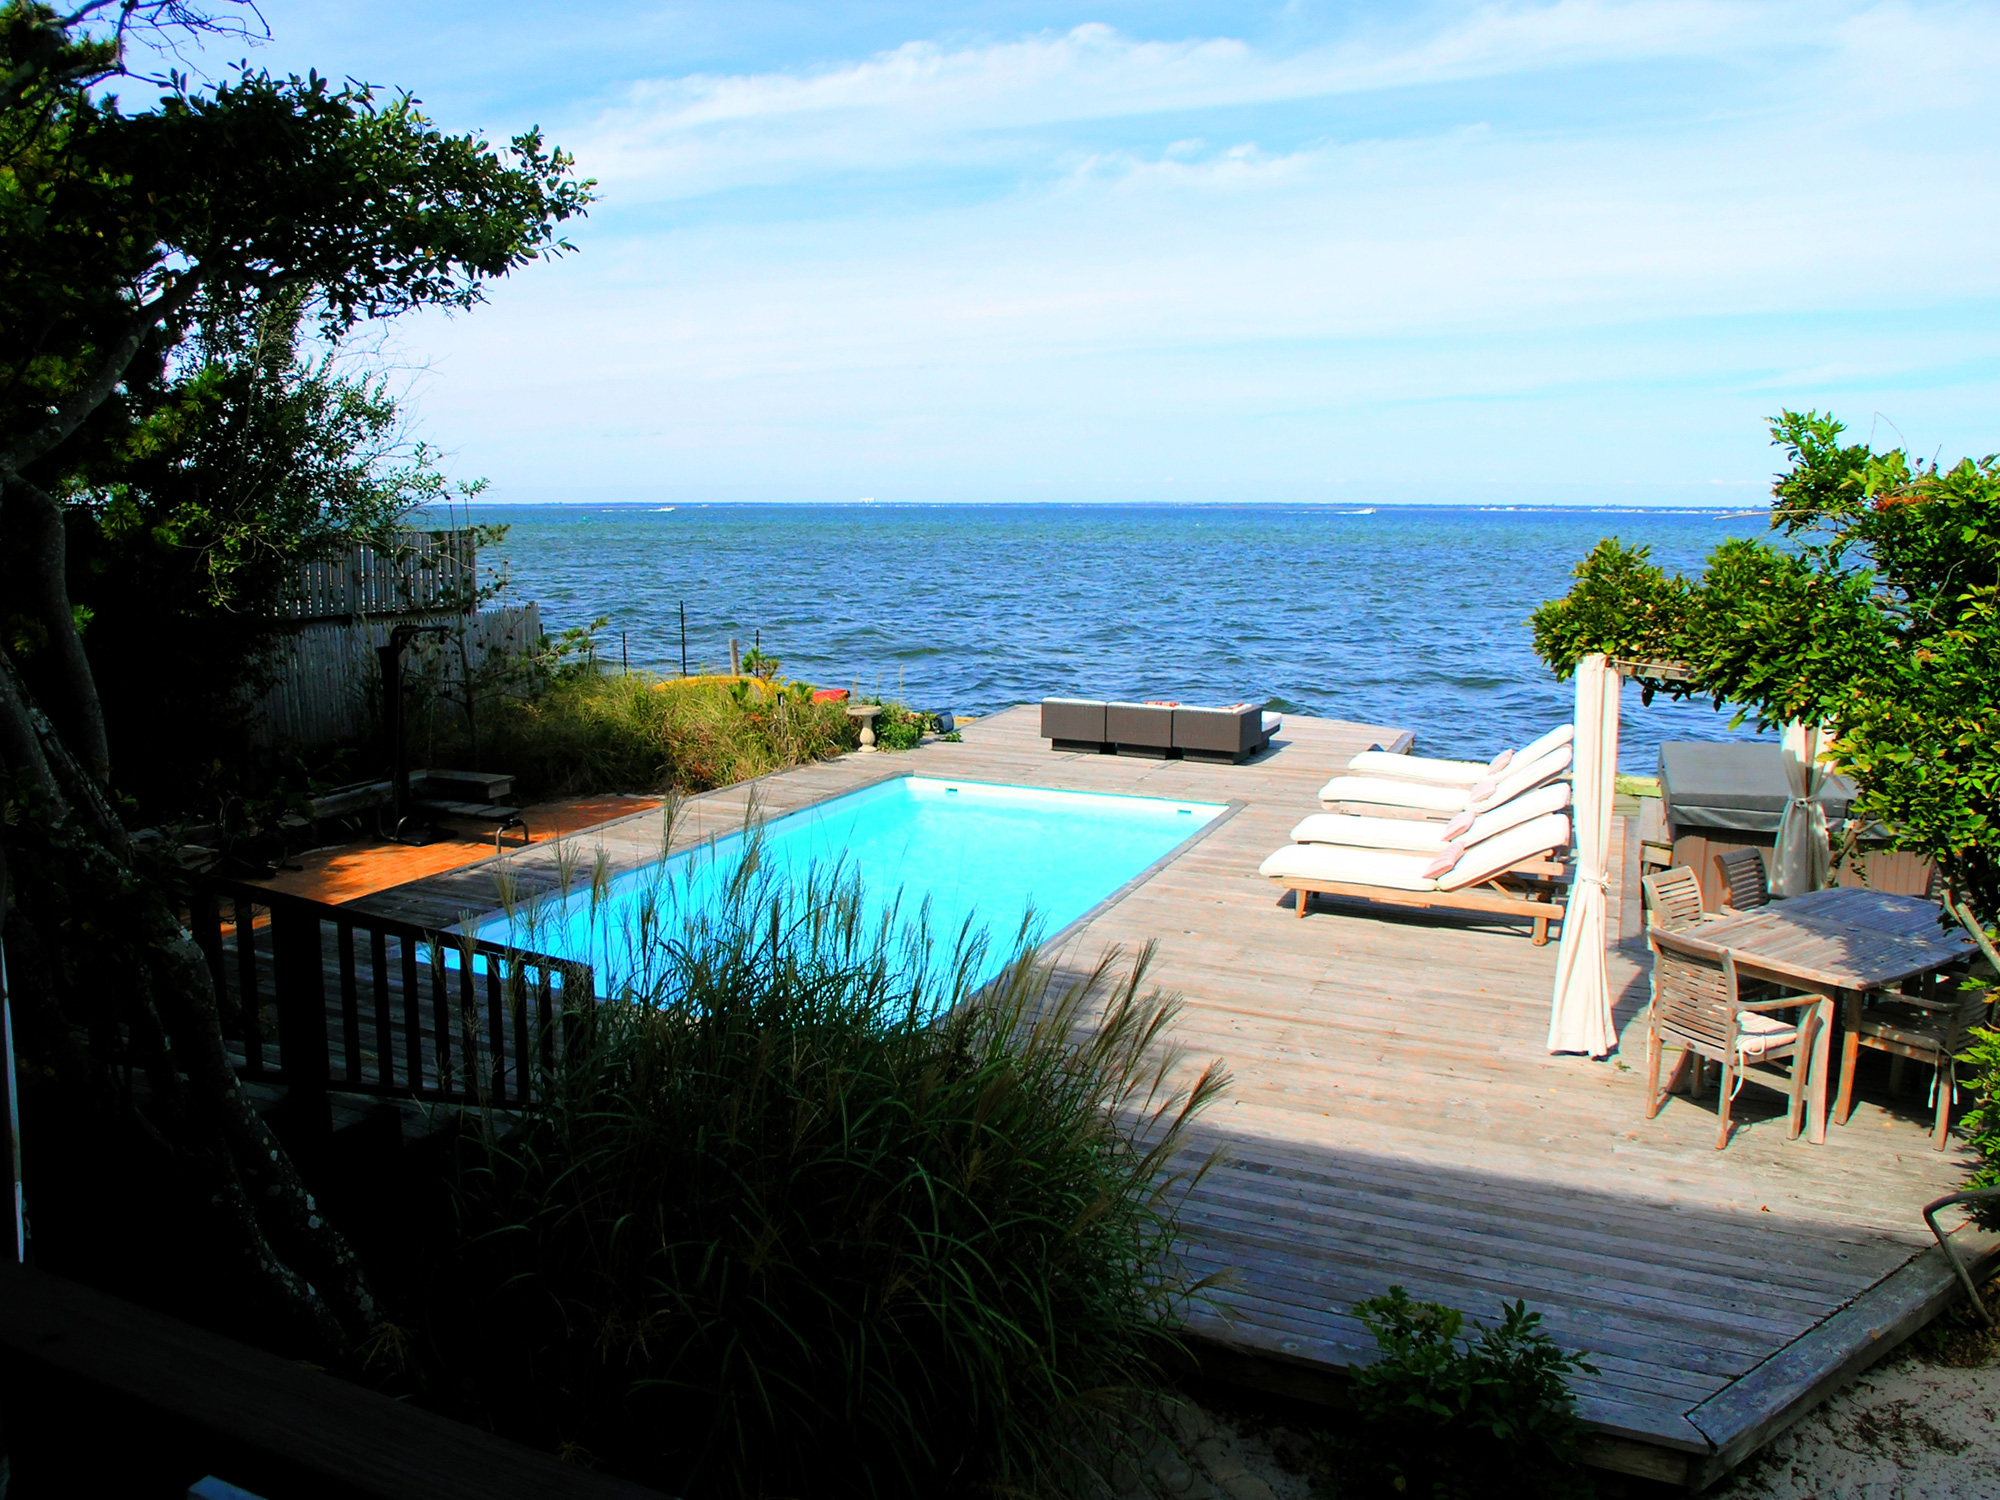 247 Bay Walk Vp Fire Island Pines Premium Homes And